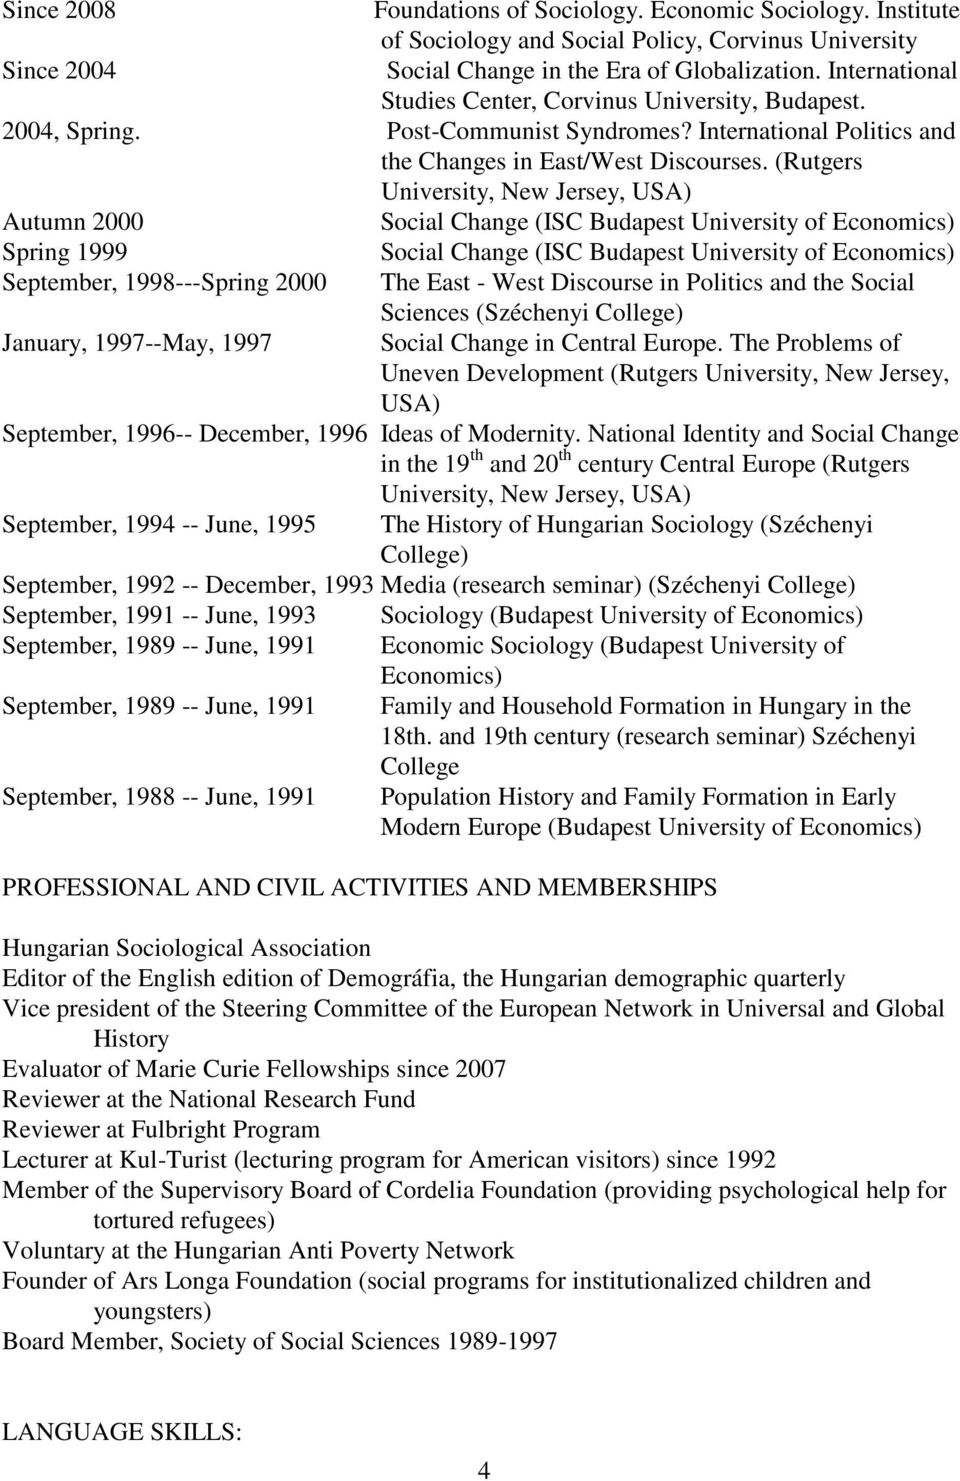 (Rutgers University, New Jersey, USA) Autumn 2000 Social Change (ISC Budapest University of Economics) Spring 1999 Social Change (ISC Budapest University of Economics) September, 1998---Spring 2000